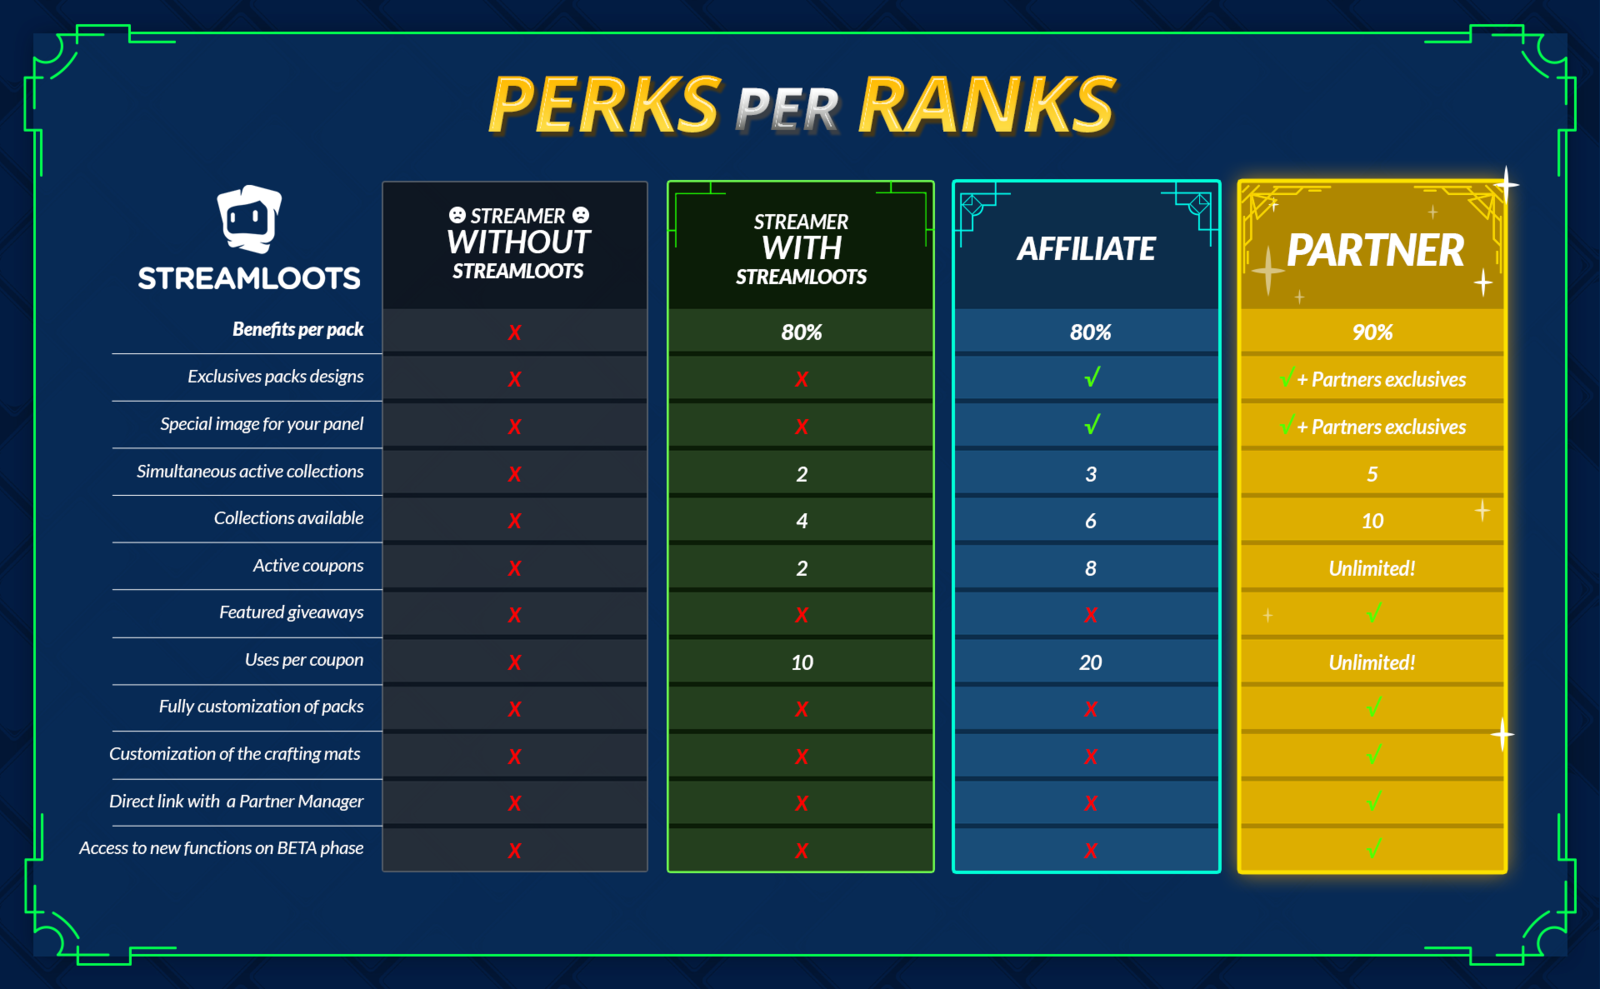 All the perks per rank